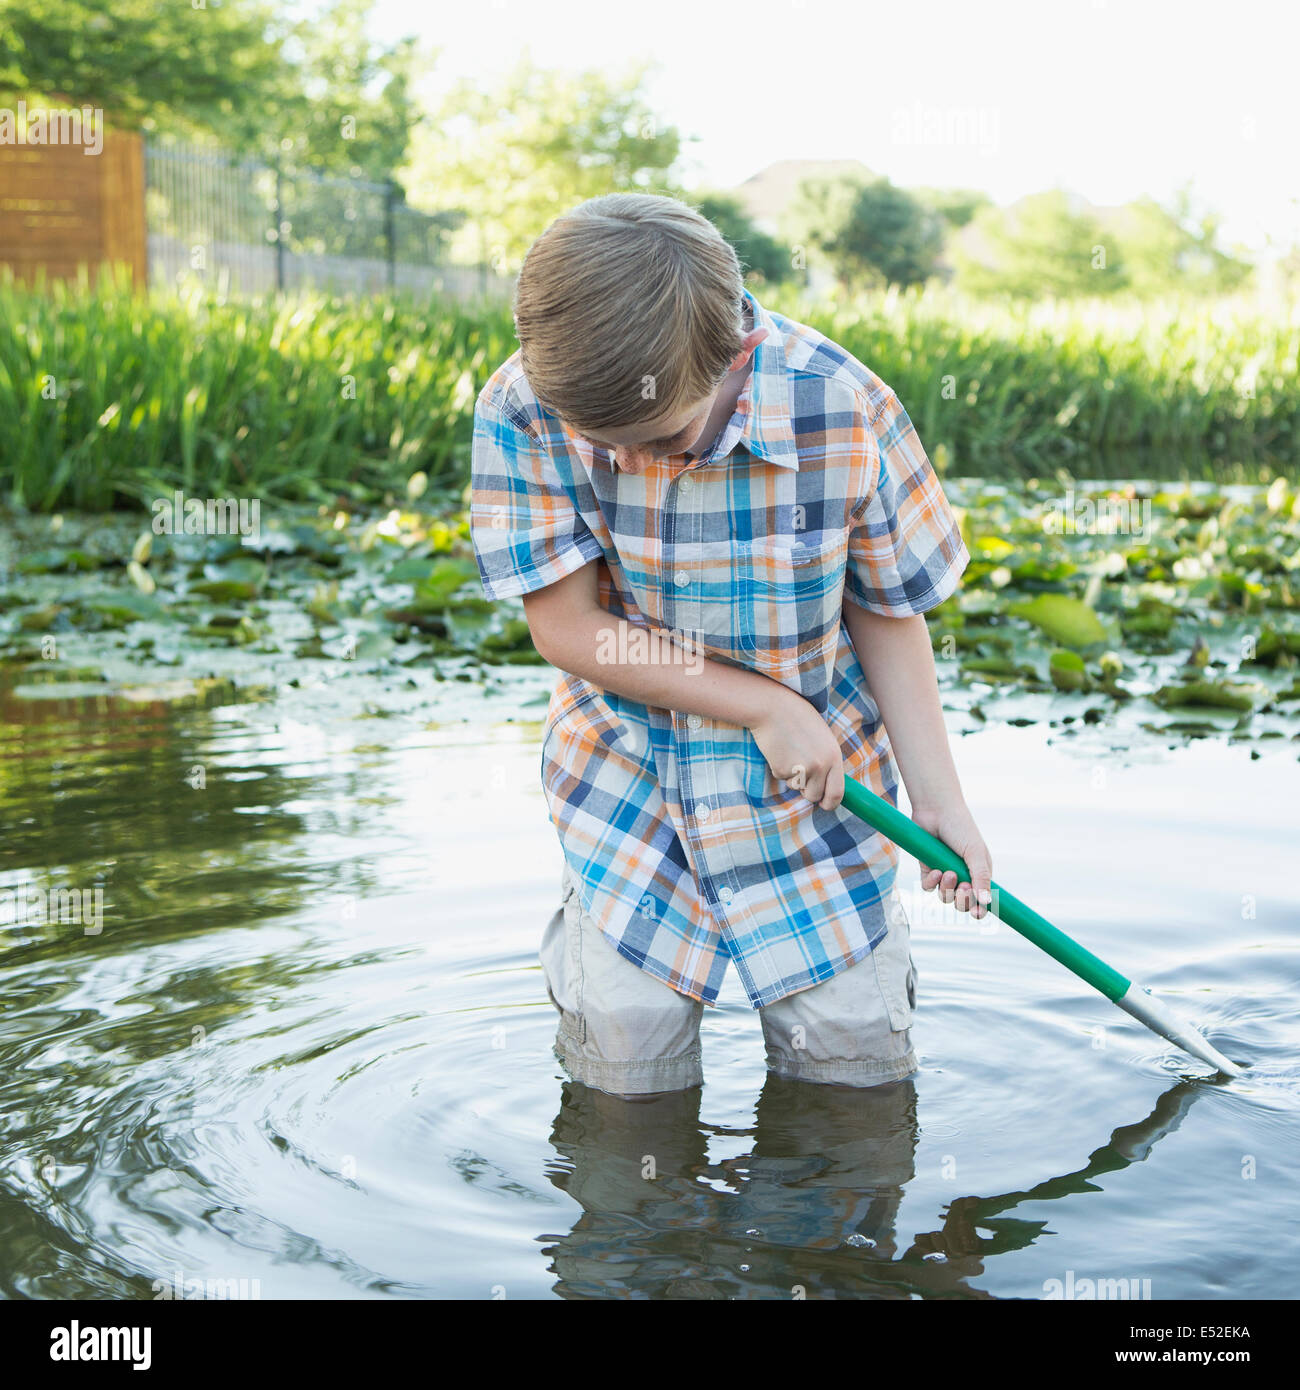 A young boy standing thigh deep in water, using a net to scoop up interesting objects from the water. - Stock Image